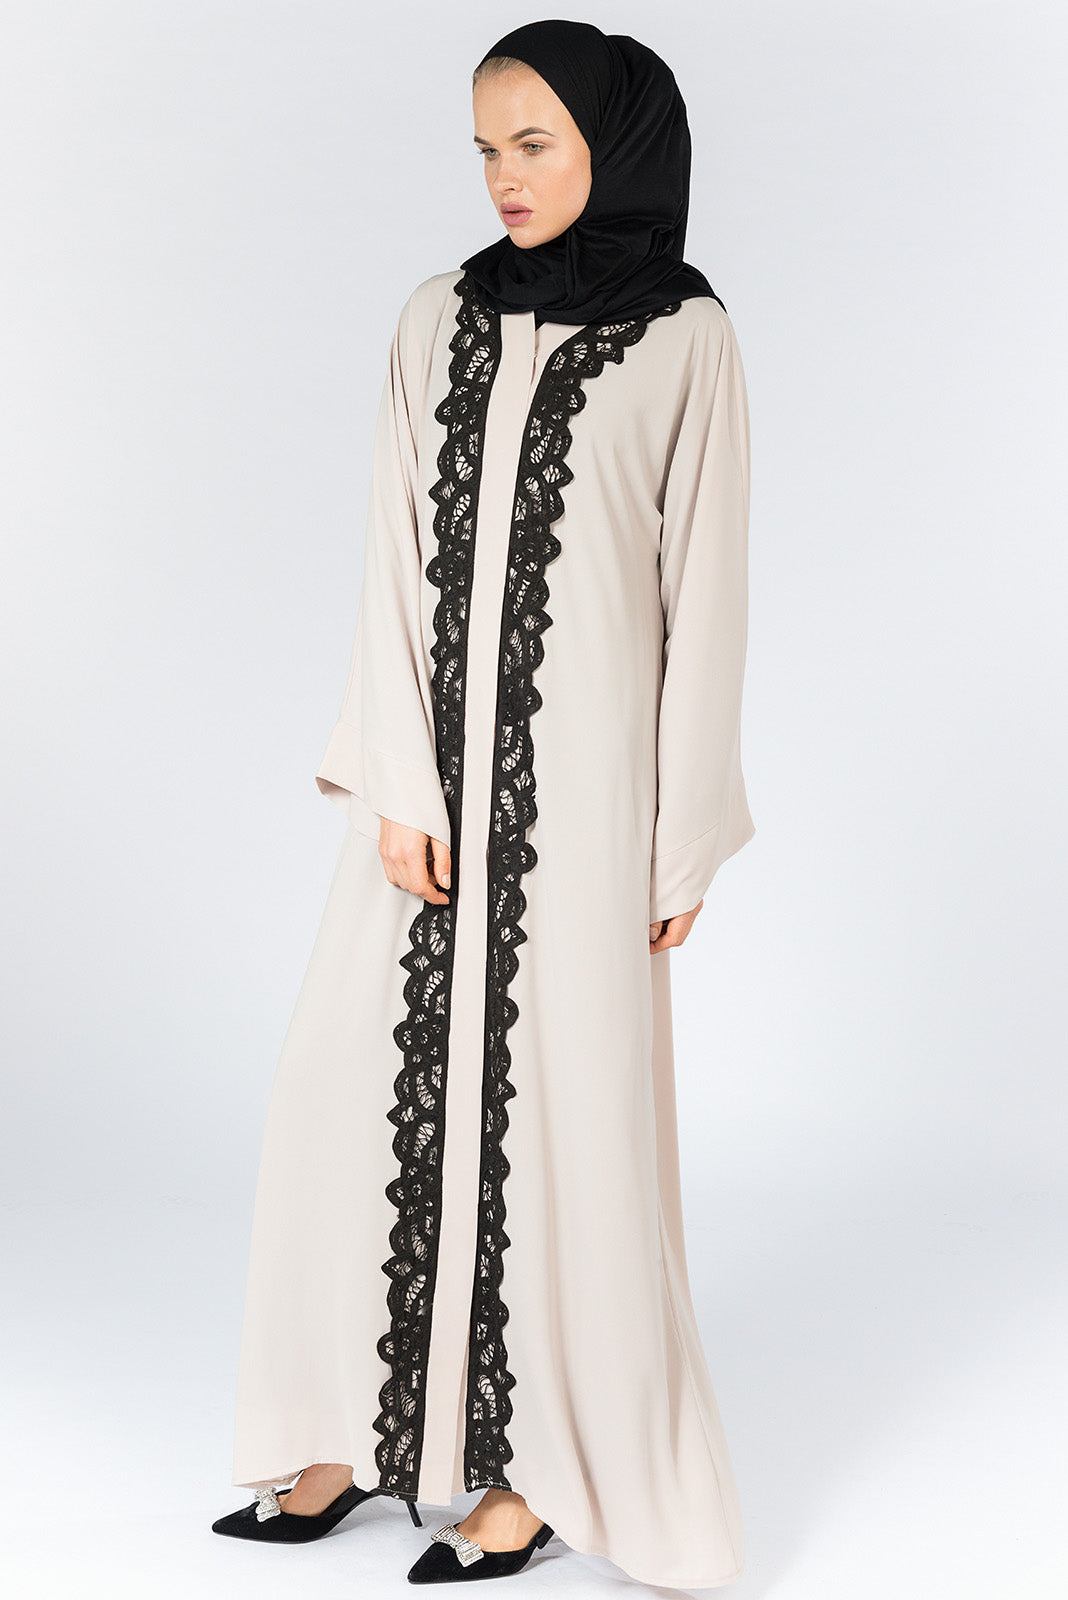 FERADJE London Battenburg Abaya Beige UK